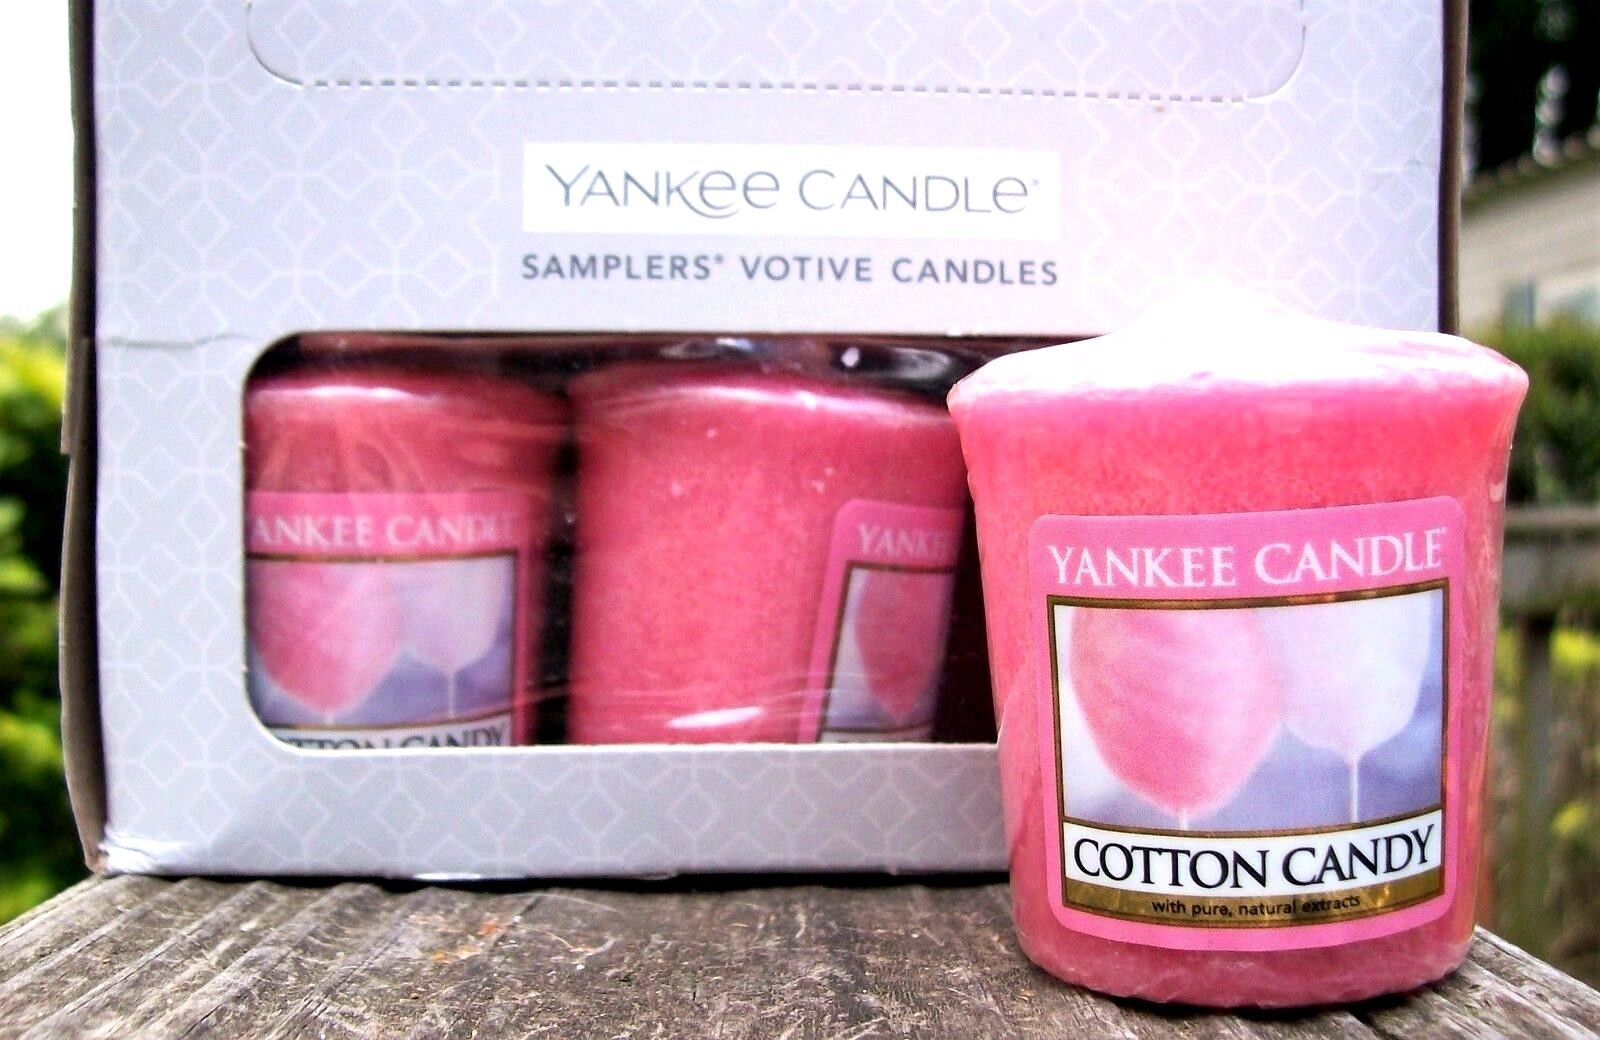 Box Lot of 18 Yankee Candle Retired  COTTON CANDY   Votive Samplers  NEW